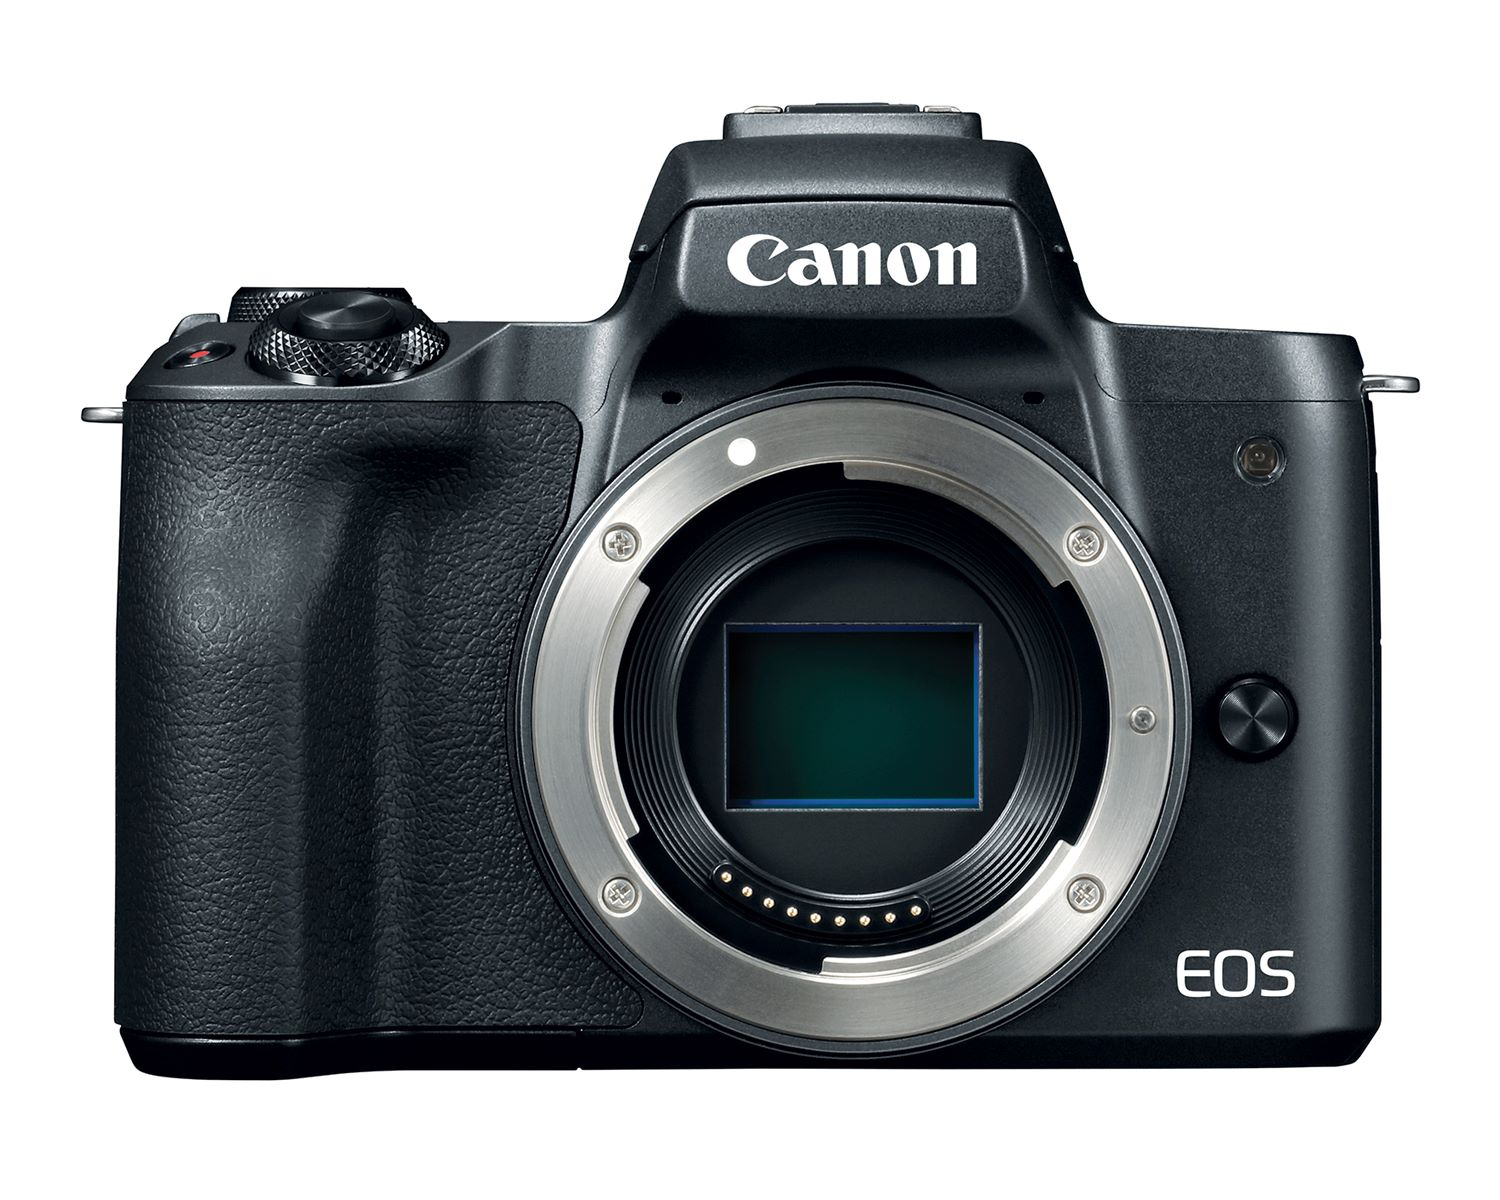 https://i1.wp.com/digital-photography-school.com/wp-content/uploads/2020/10/Canon-EOS-M5-Mark-II-coming-soon-1.jpg?resize=1500%2C1200&ssl=1